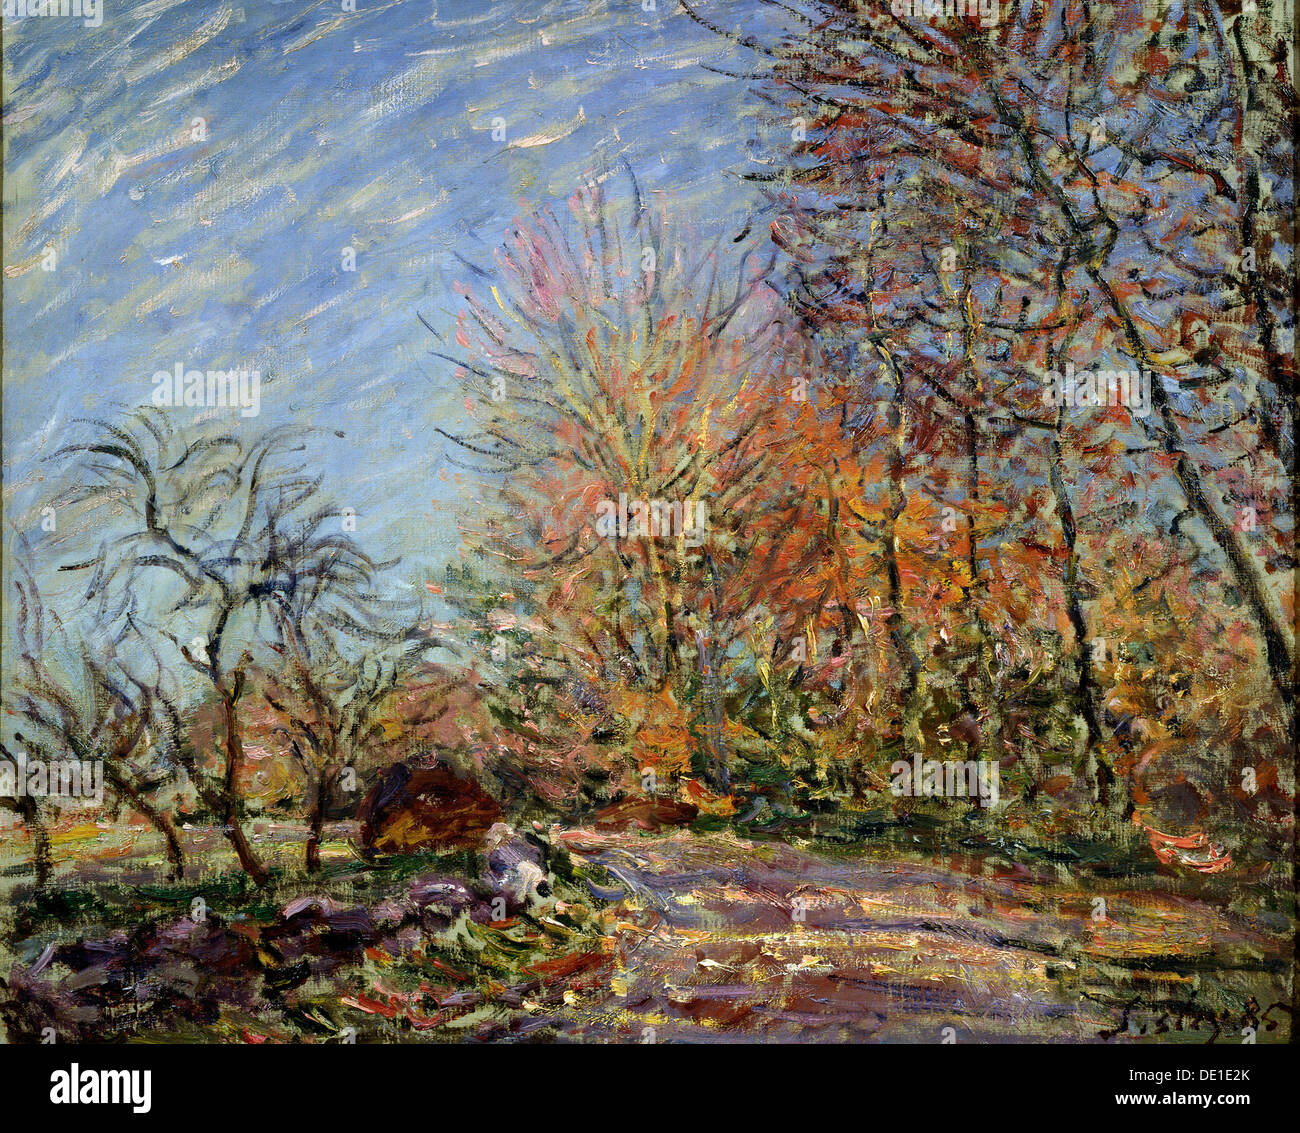 'At the edge of the forest in Fontainebleau', 1885.  Artist: Alfred Sisley - Stock Image